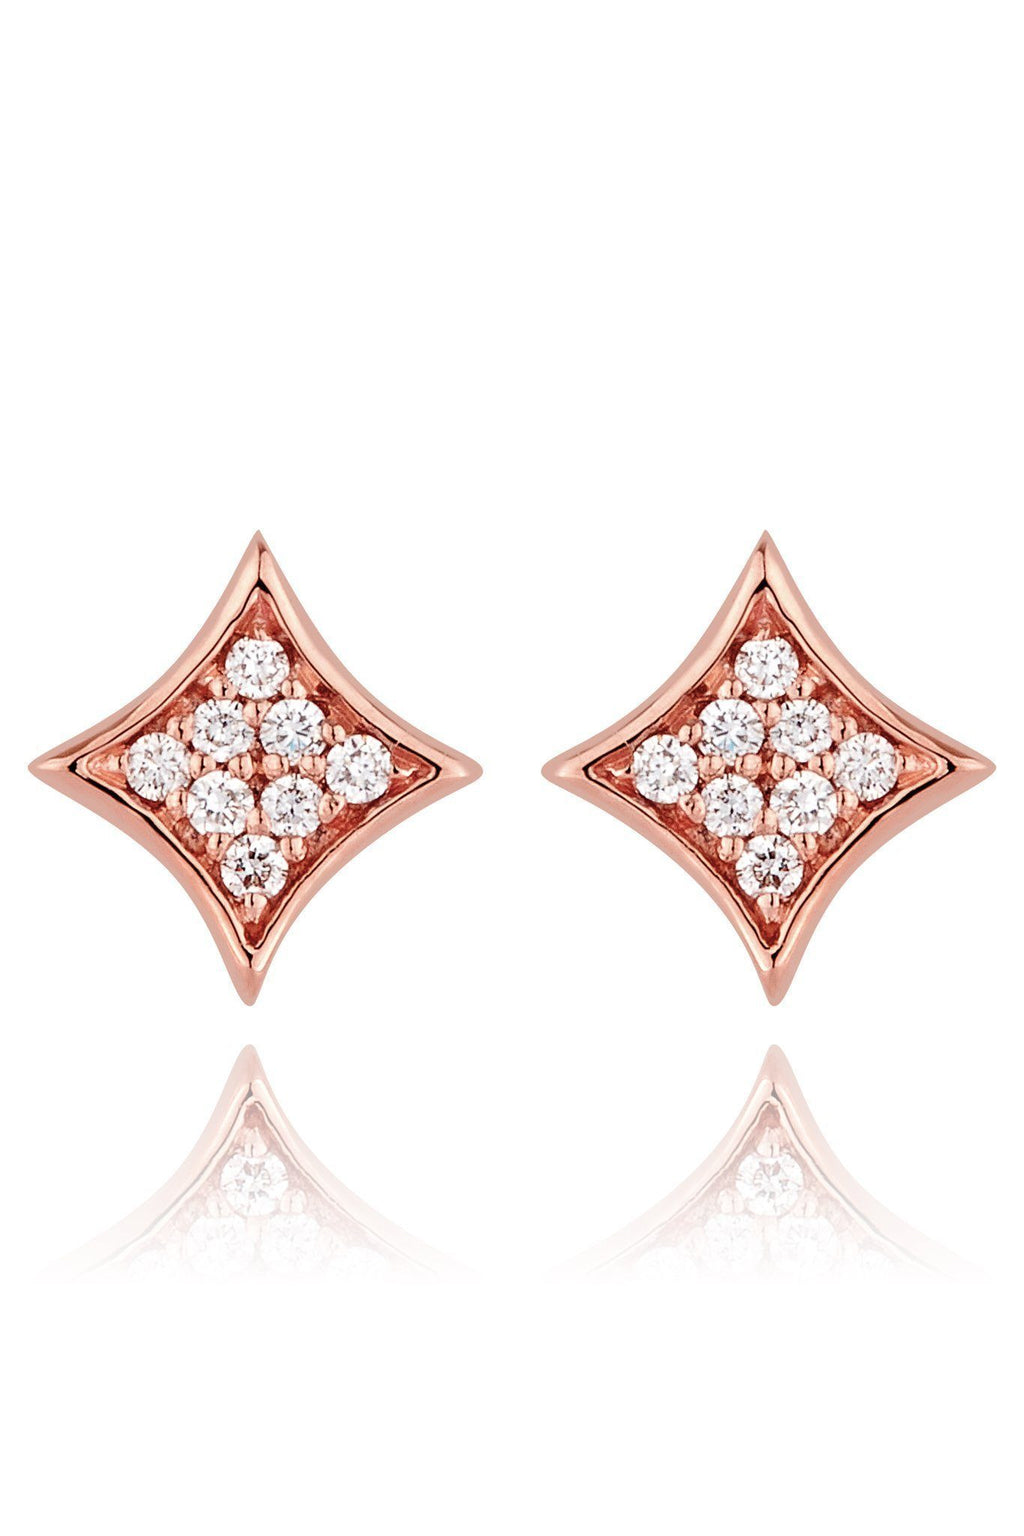 Rhombus Diamond Pavé Stud Earrings Earrings Lark and Berry Rose Gold